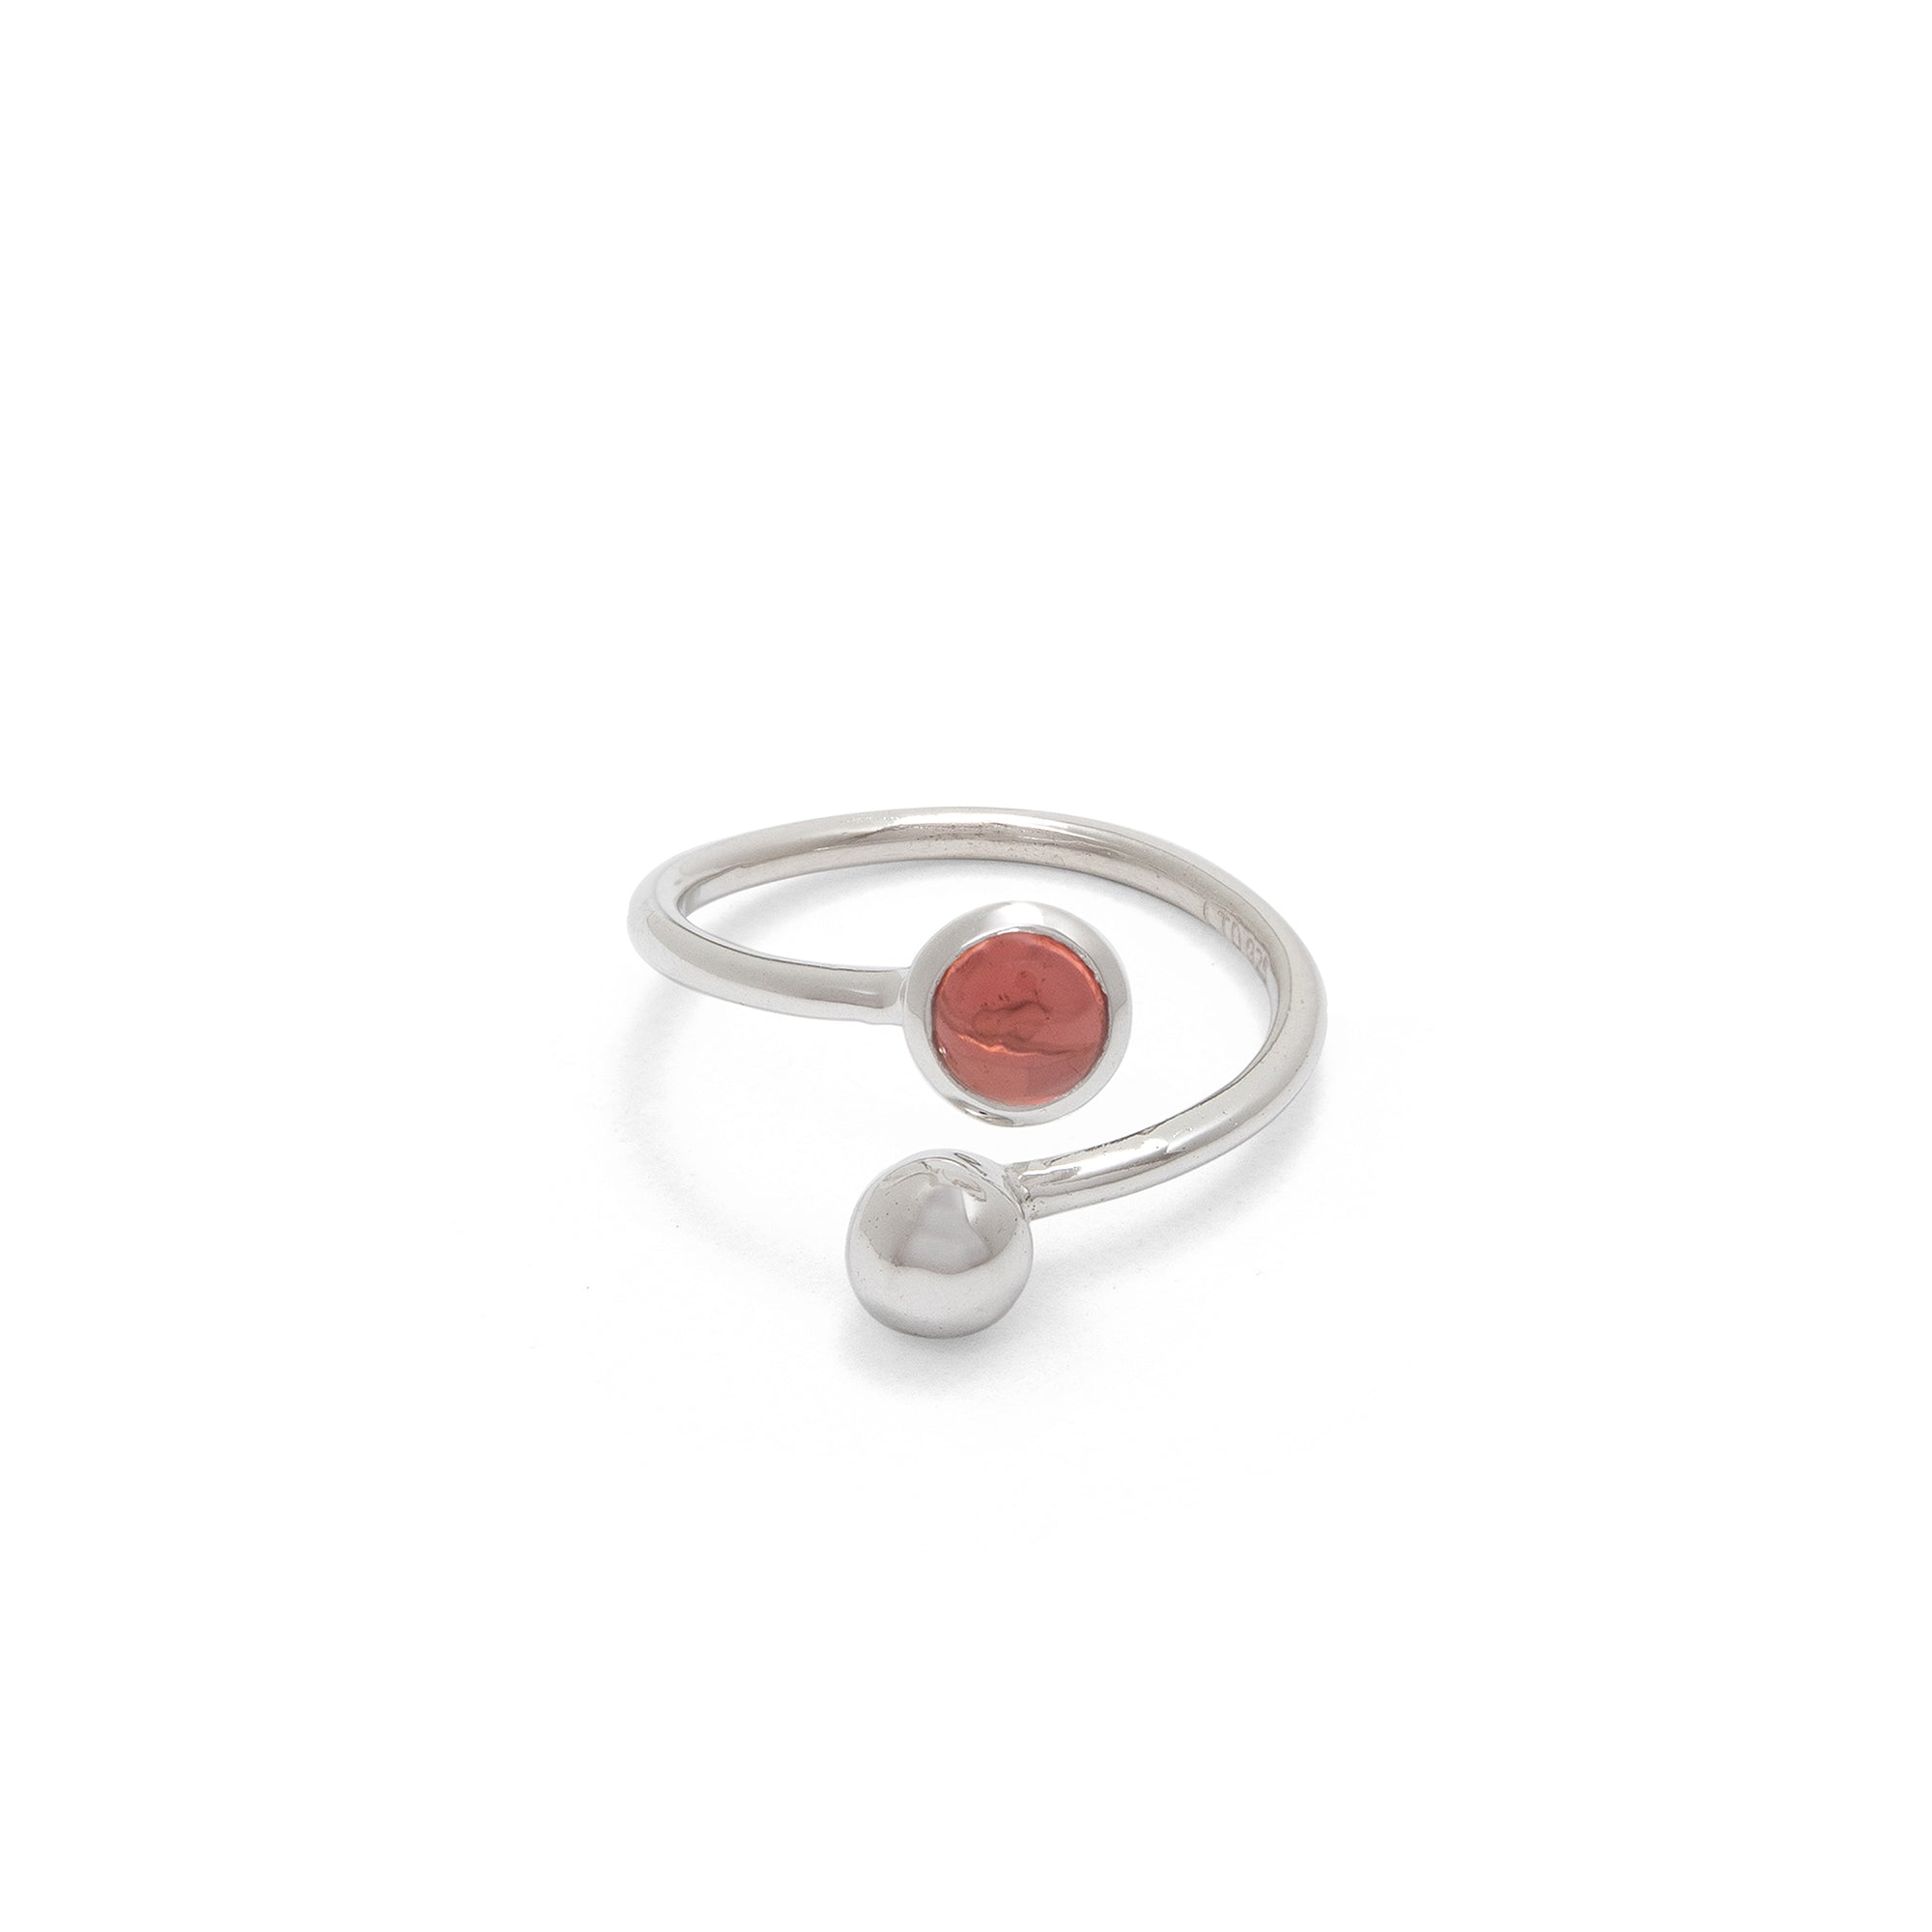 Adjustable Birthstone Ring January: Sterling Silver and Garnet